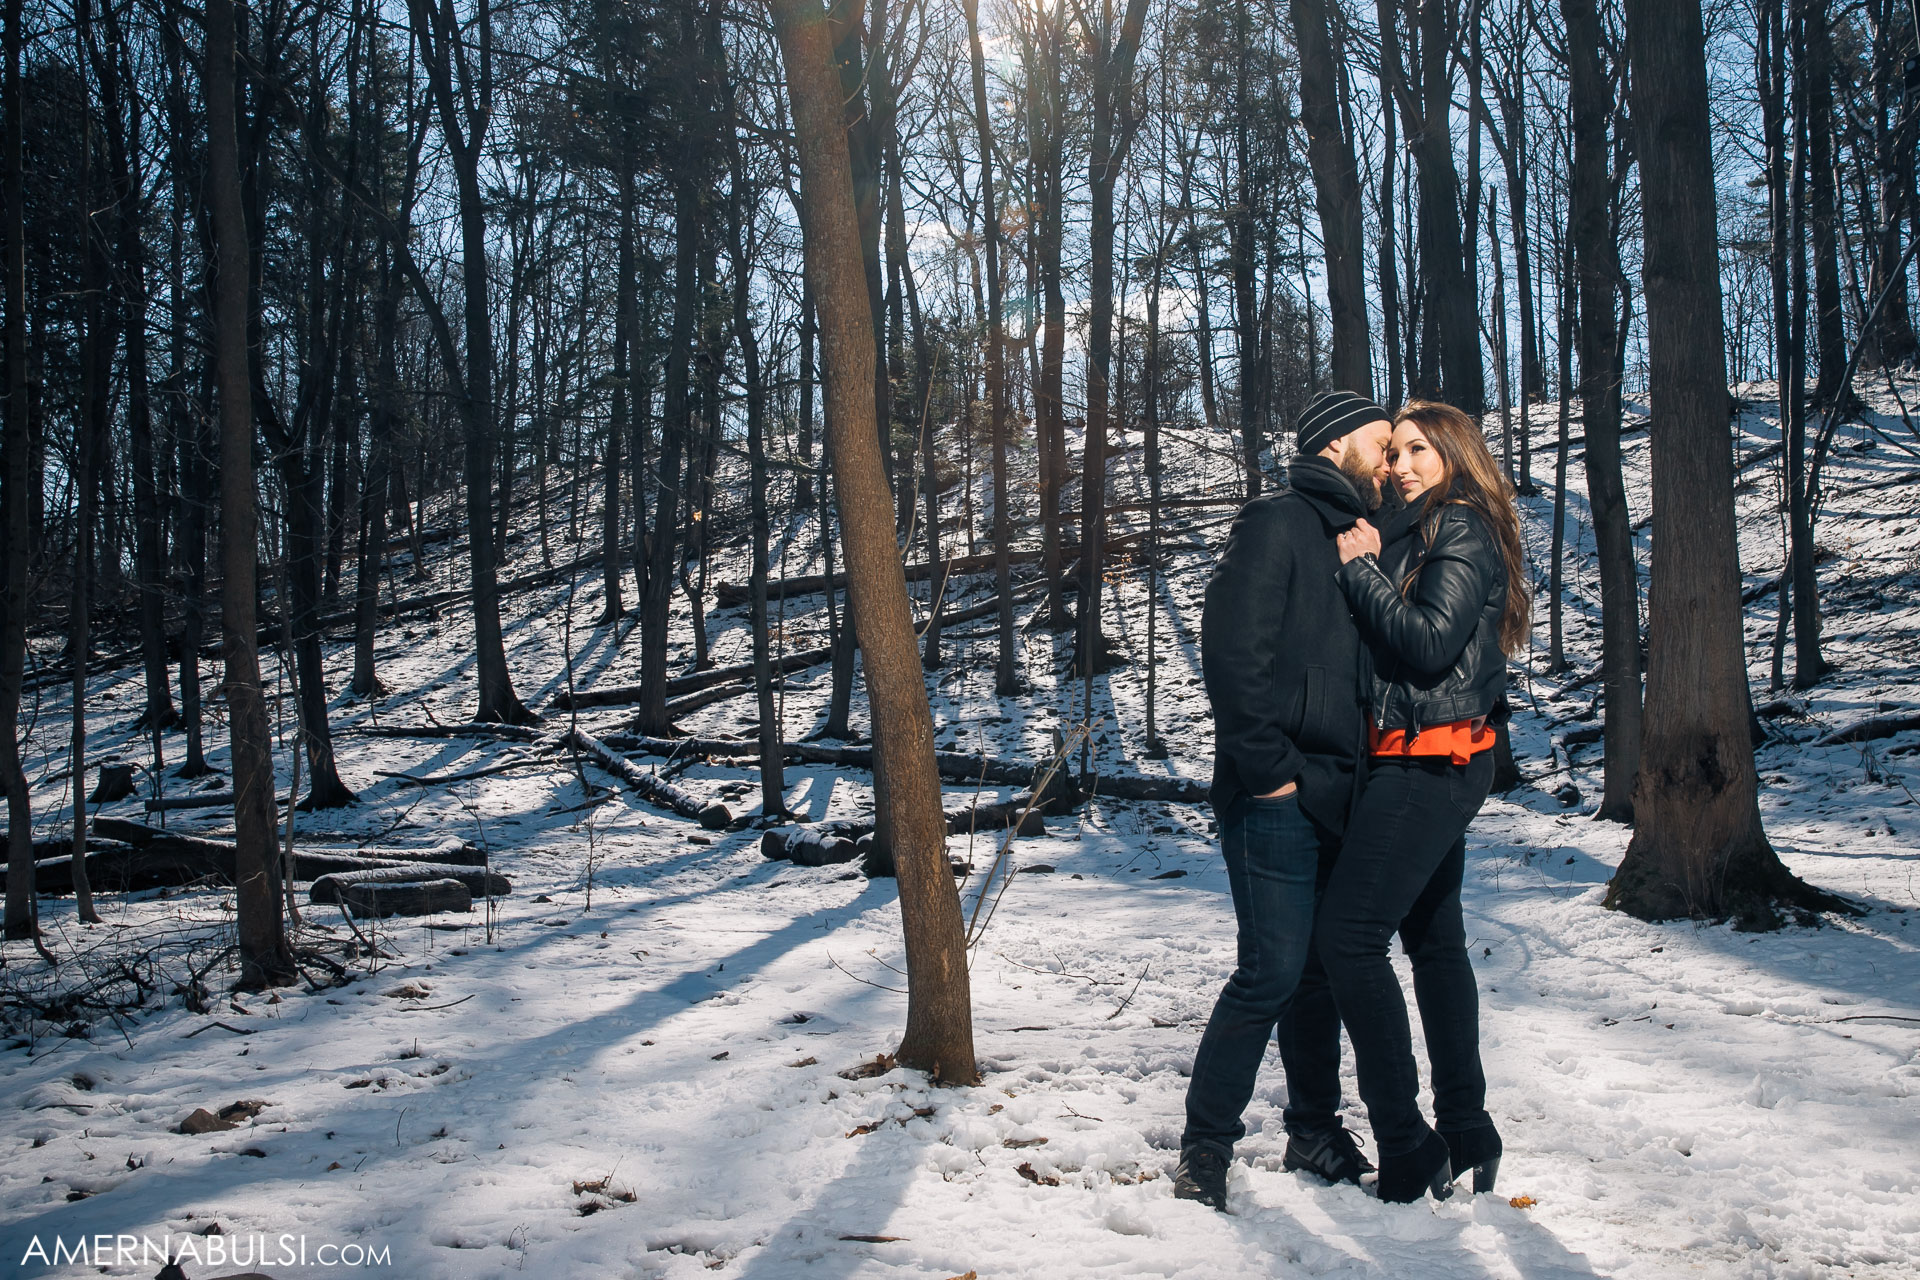 Engagement Photography Locations » Amer Nabulsi – Hamilton